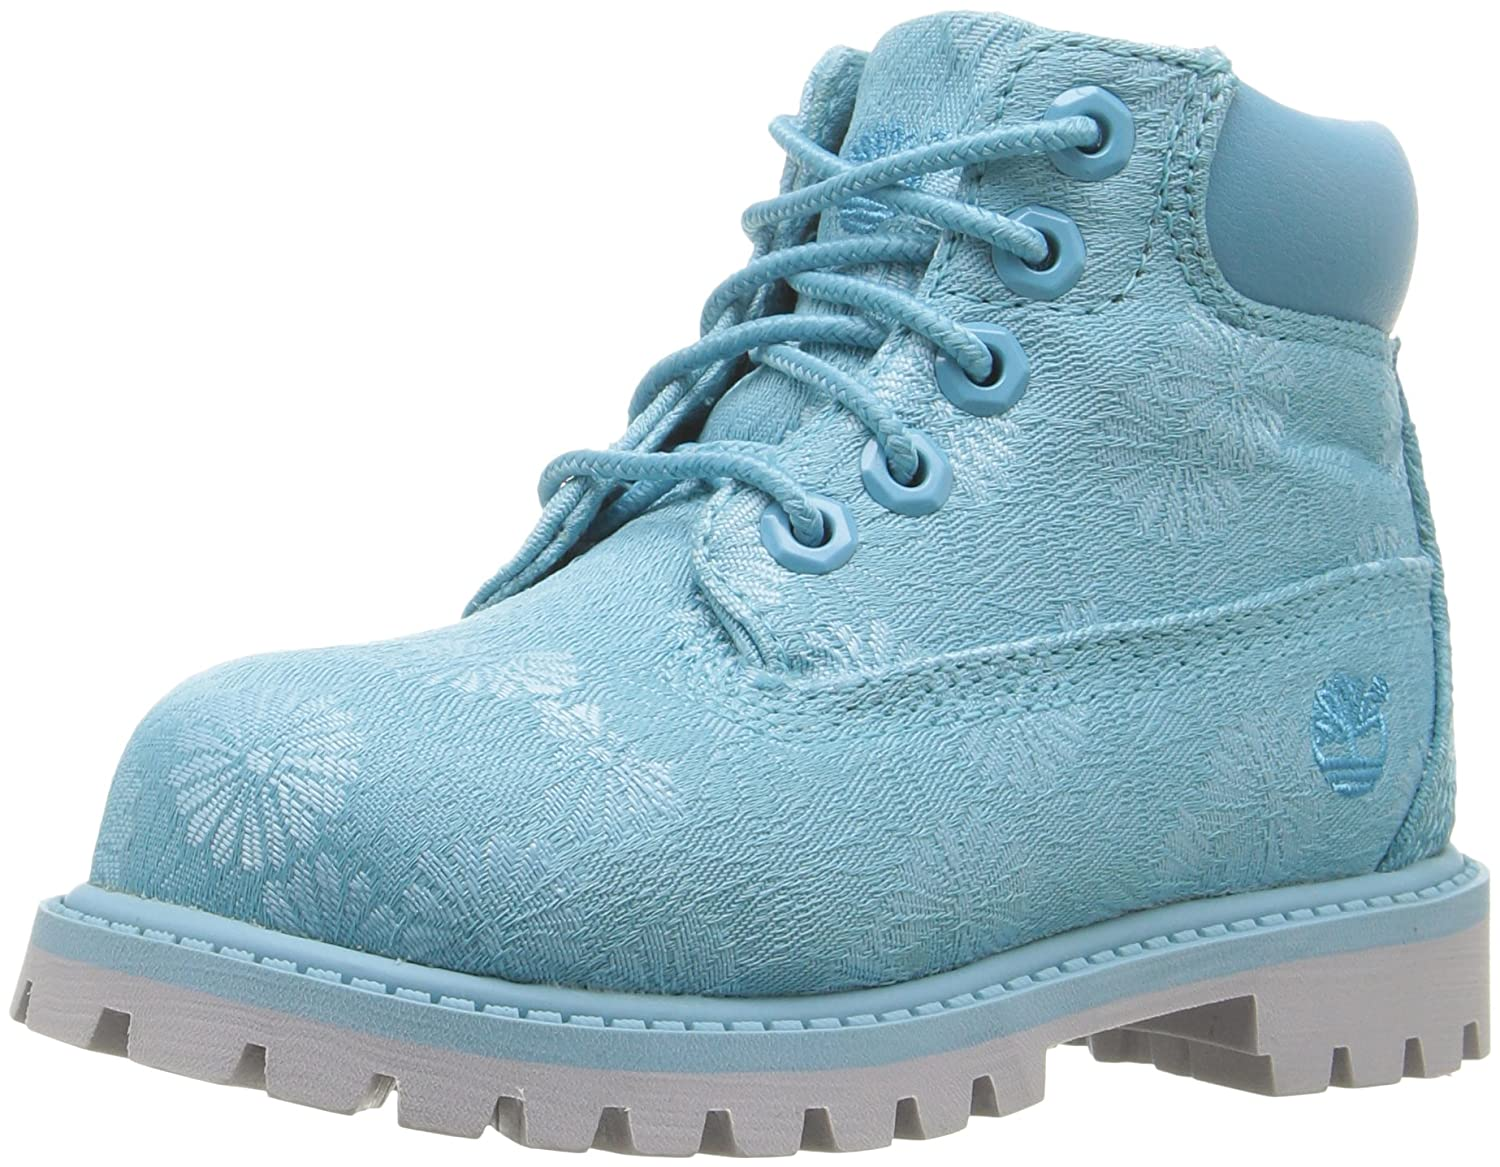 Timberland Kids Girl's 6 in Premium Waterproof Fabric Boot (Toddler/Little Kid) TB0A175VA35-420